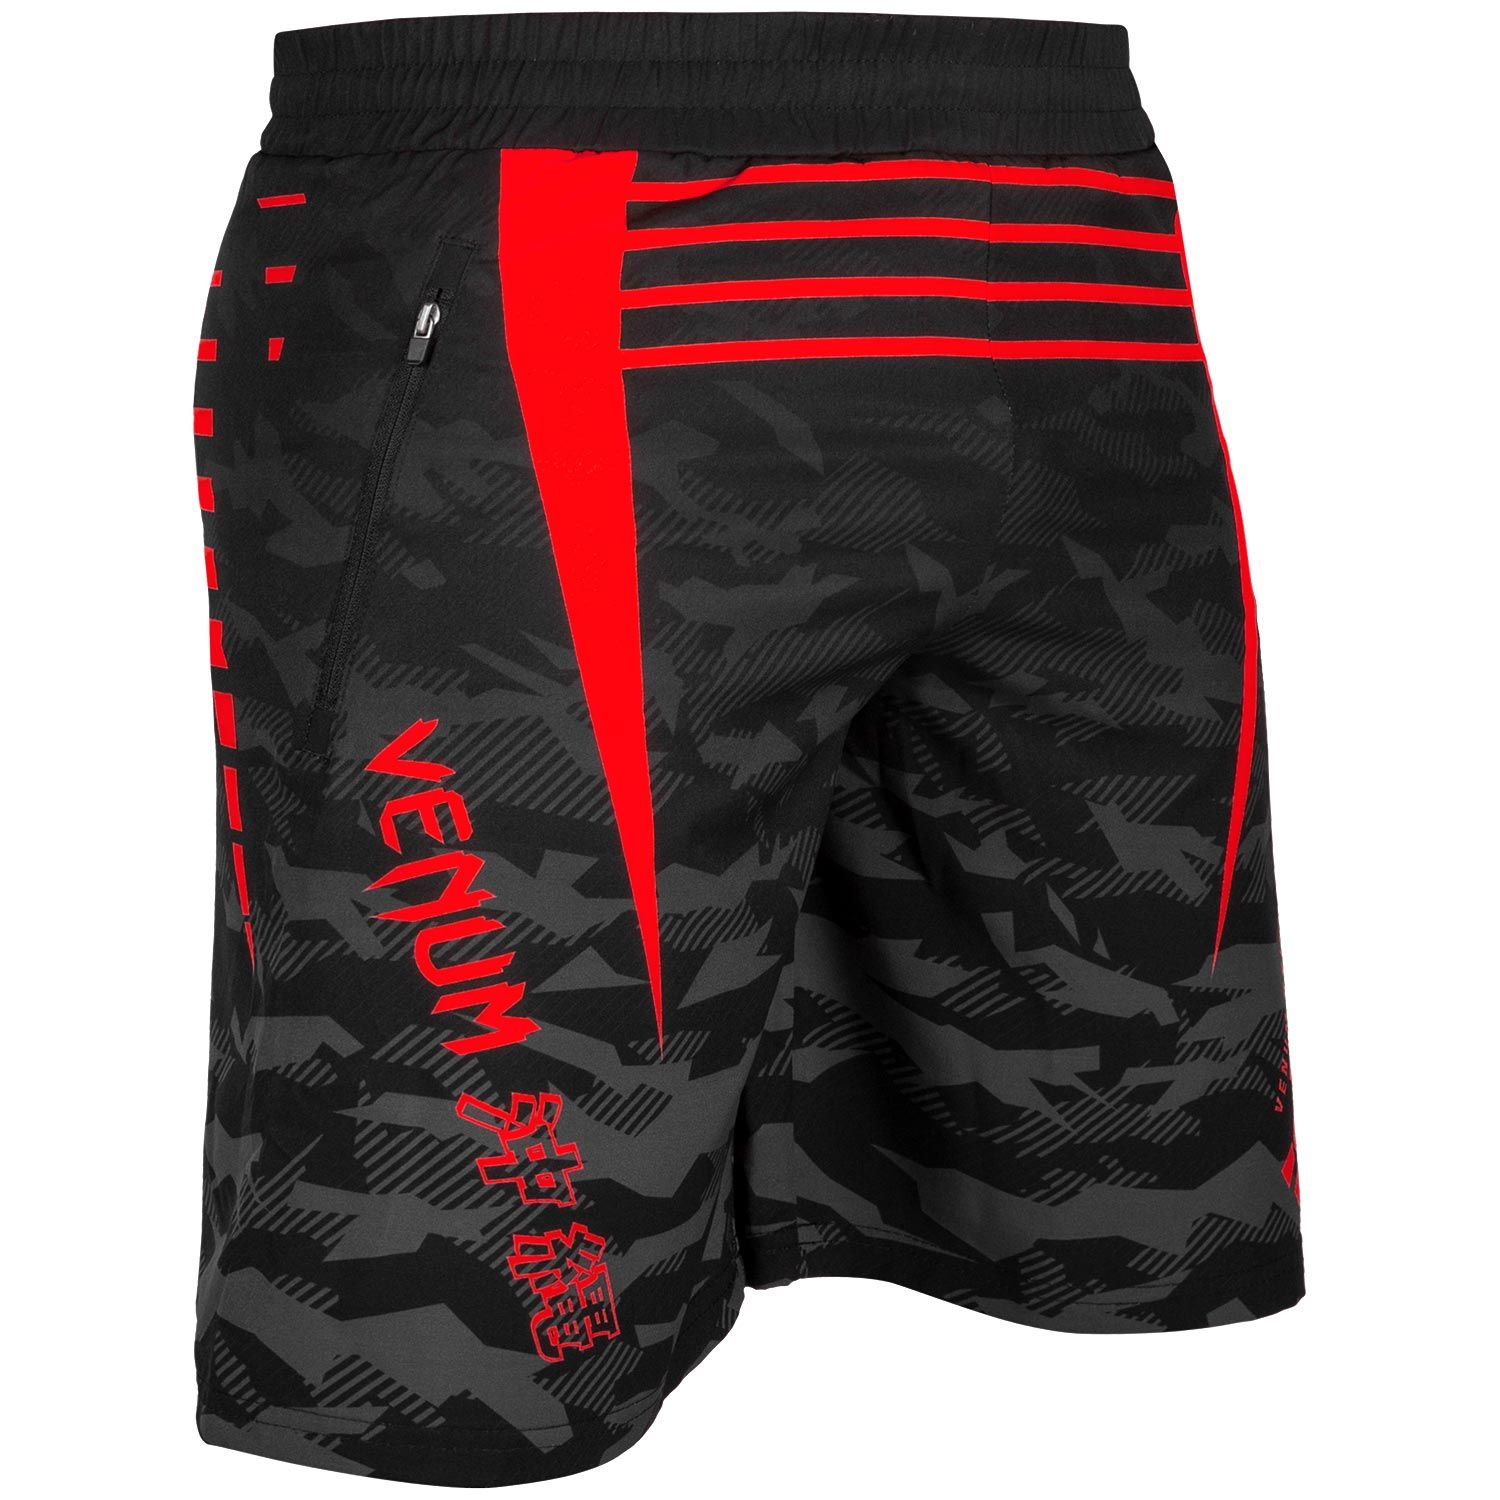 Venum Okinawa 2.0 Training Shorts - Venum.com Europe